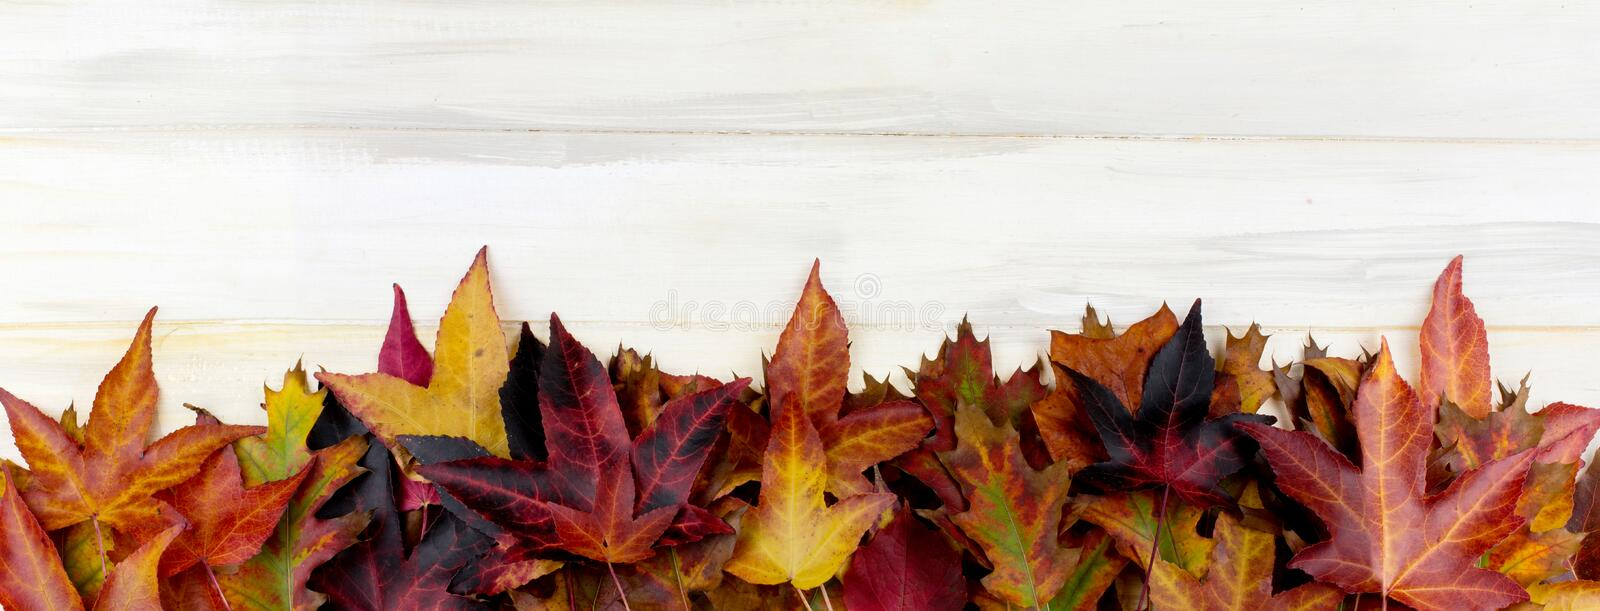 BANNER AUTUMN BACKGROUND. FRAME OF COLORFUL FALL LEAVES ON WHITE stock photos